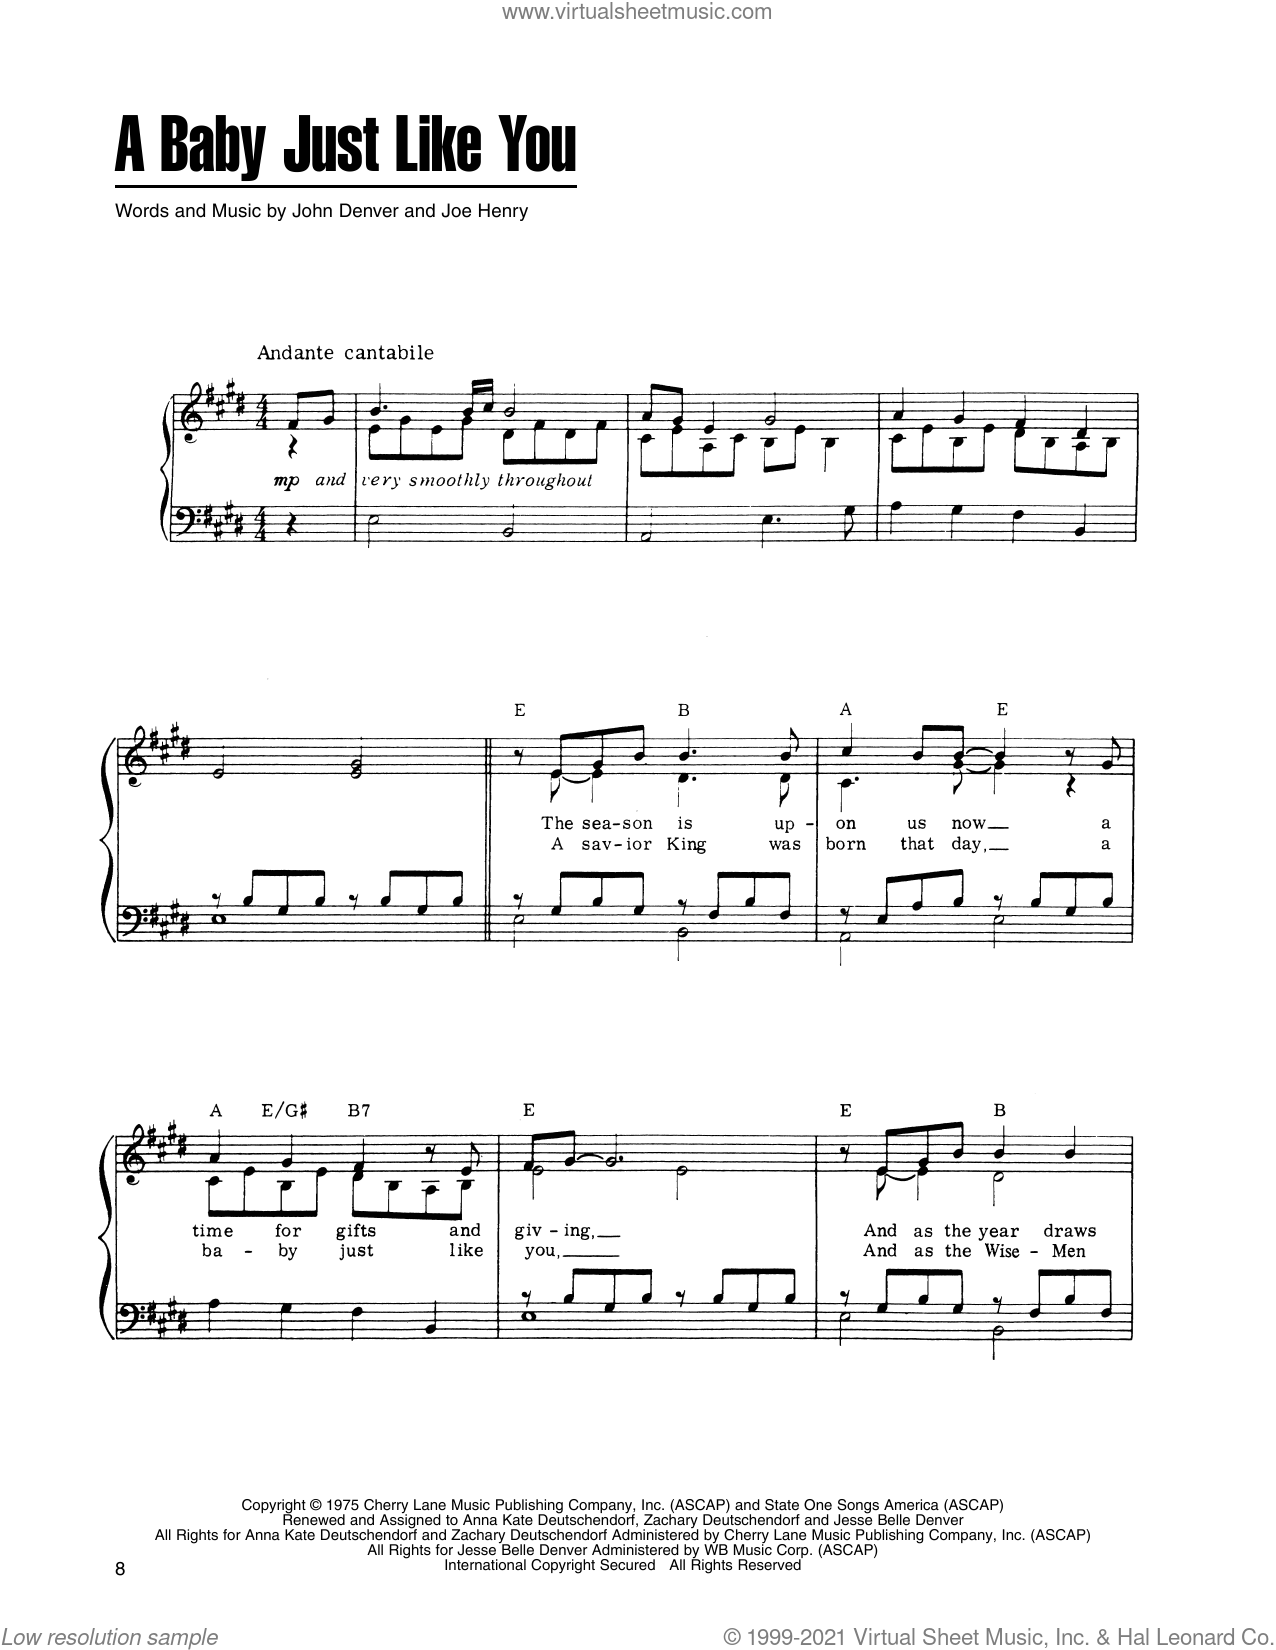 A Baby Just Like You (from A Christmas Together) sheet music for voice, piano or guitar by John Denver and The Muppets and Joe Henry, intermediate skill level